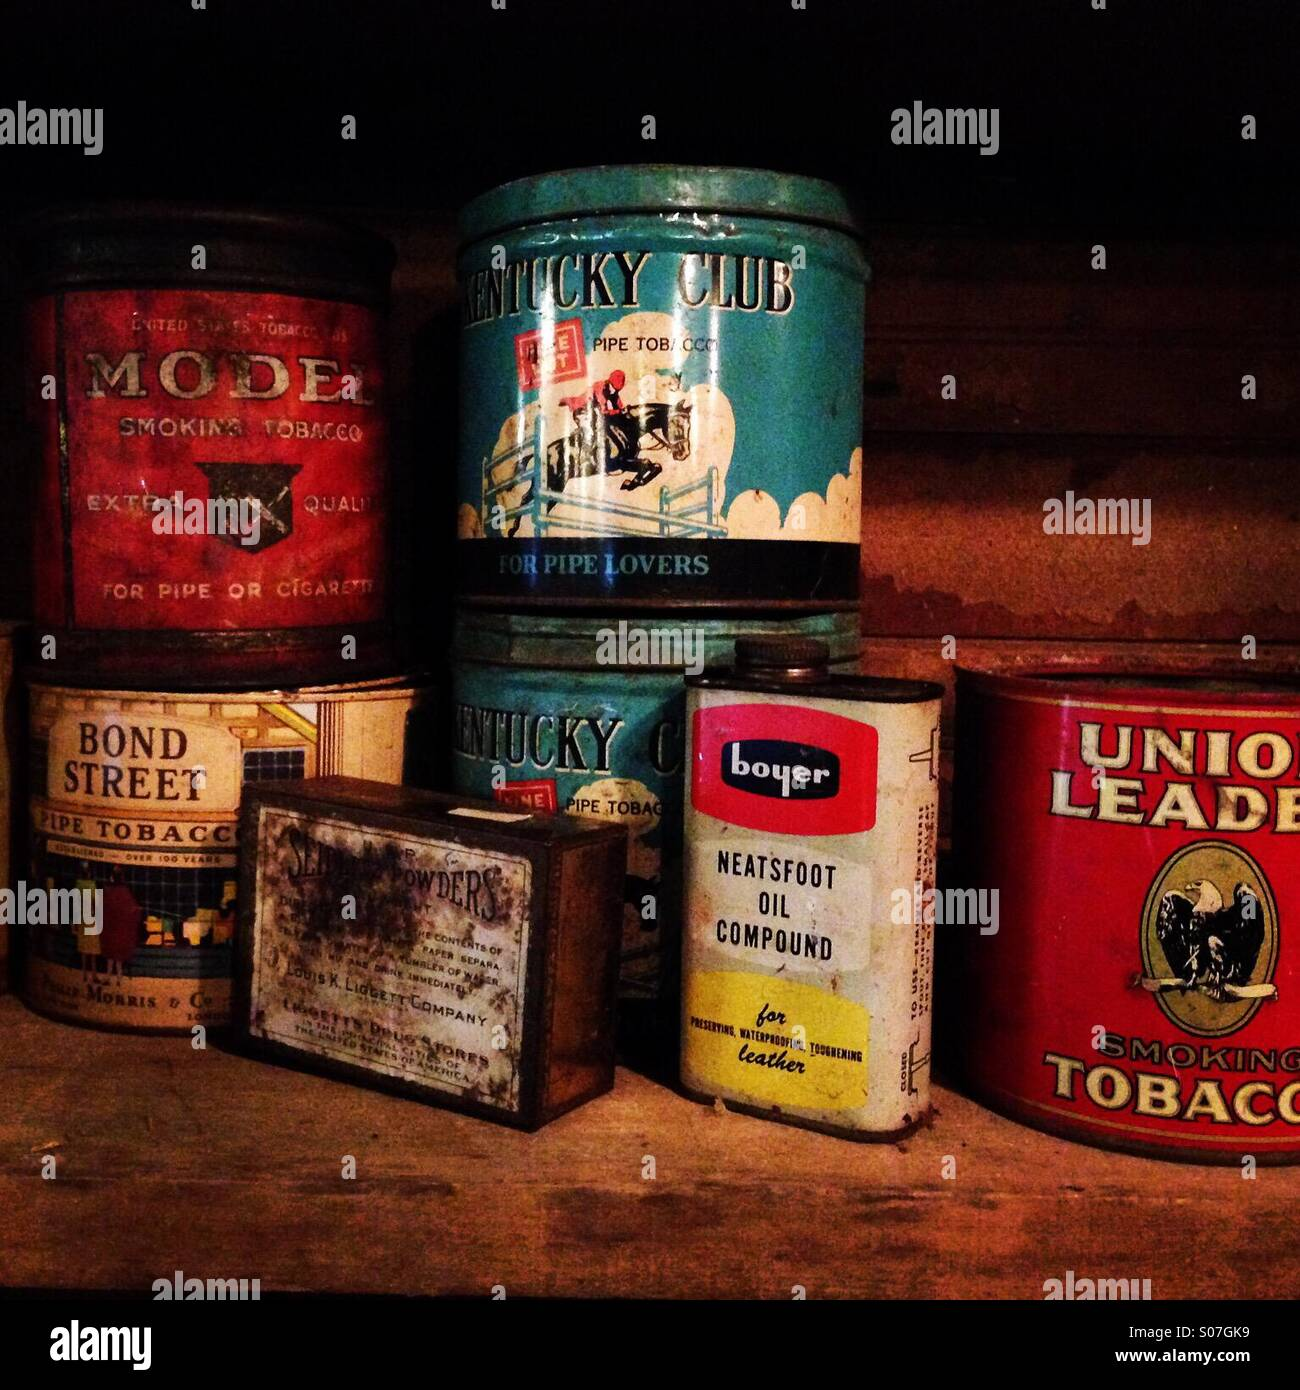 General Store Stock Photos General Store Stock Images: Tobacco Tins Stock Photos & Tobacco Tins Stock Images